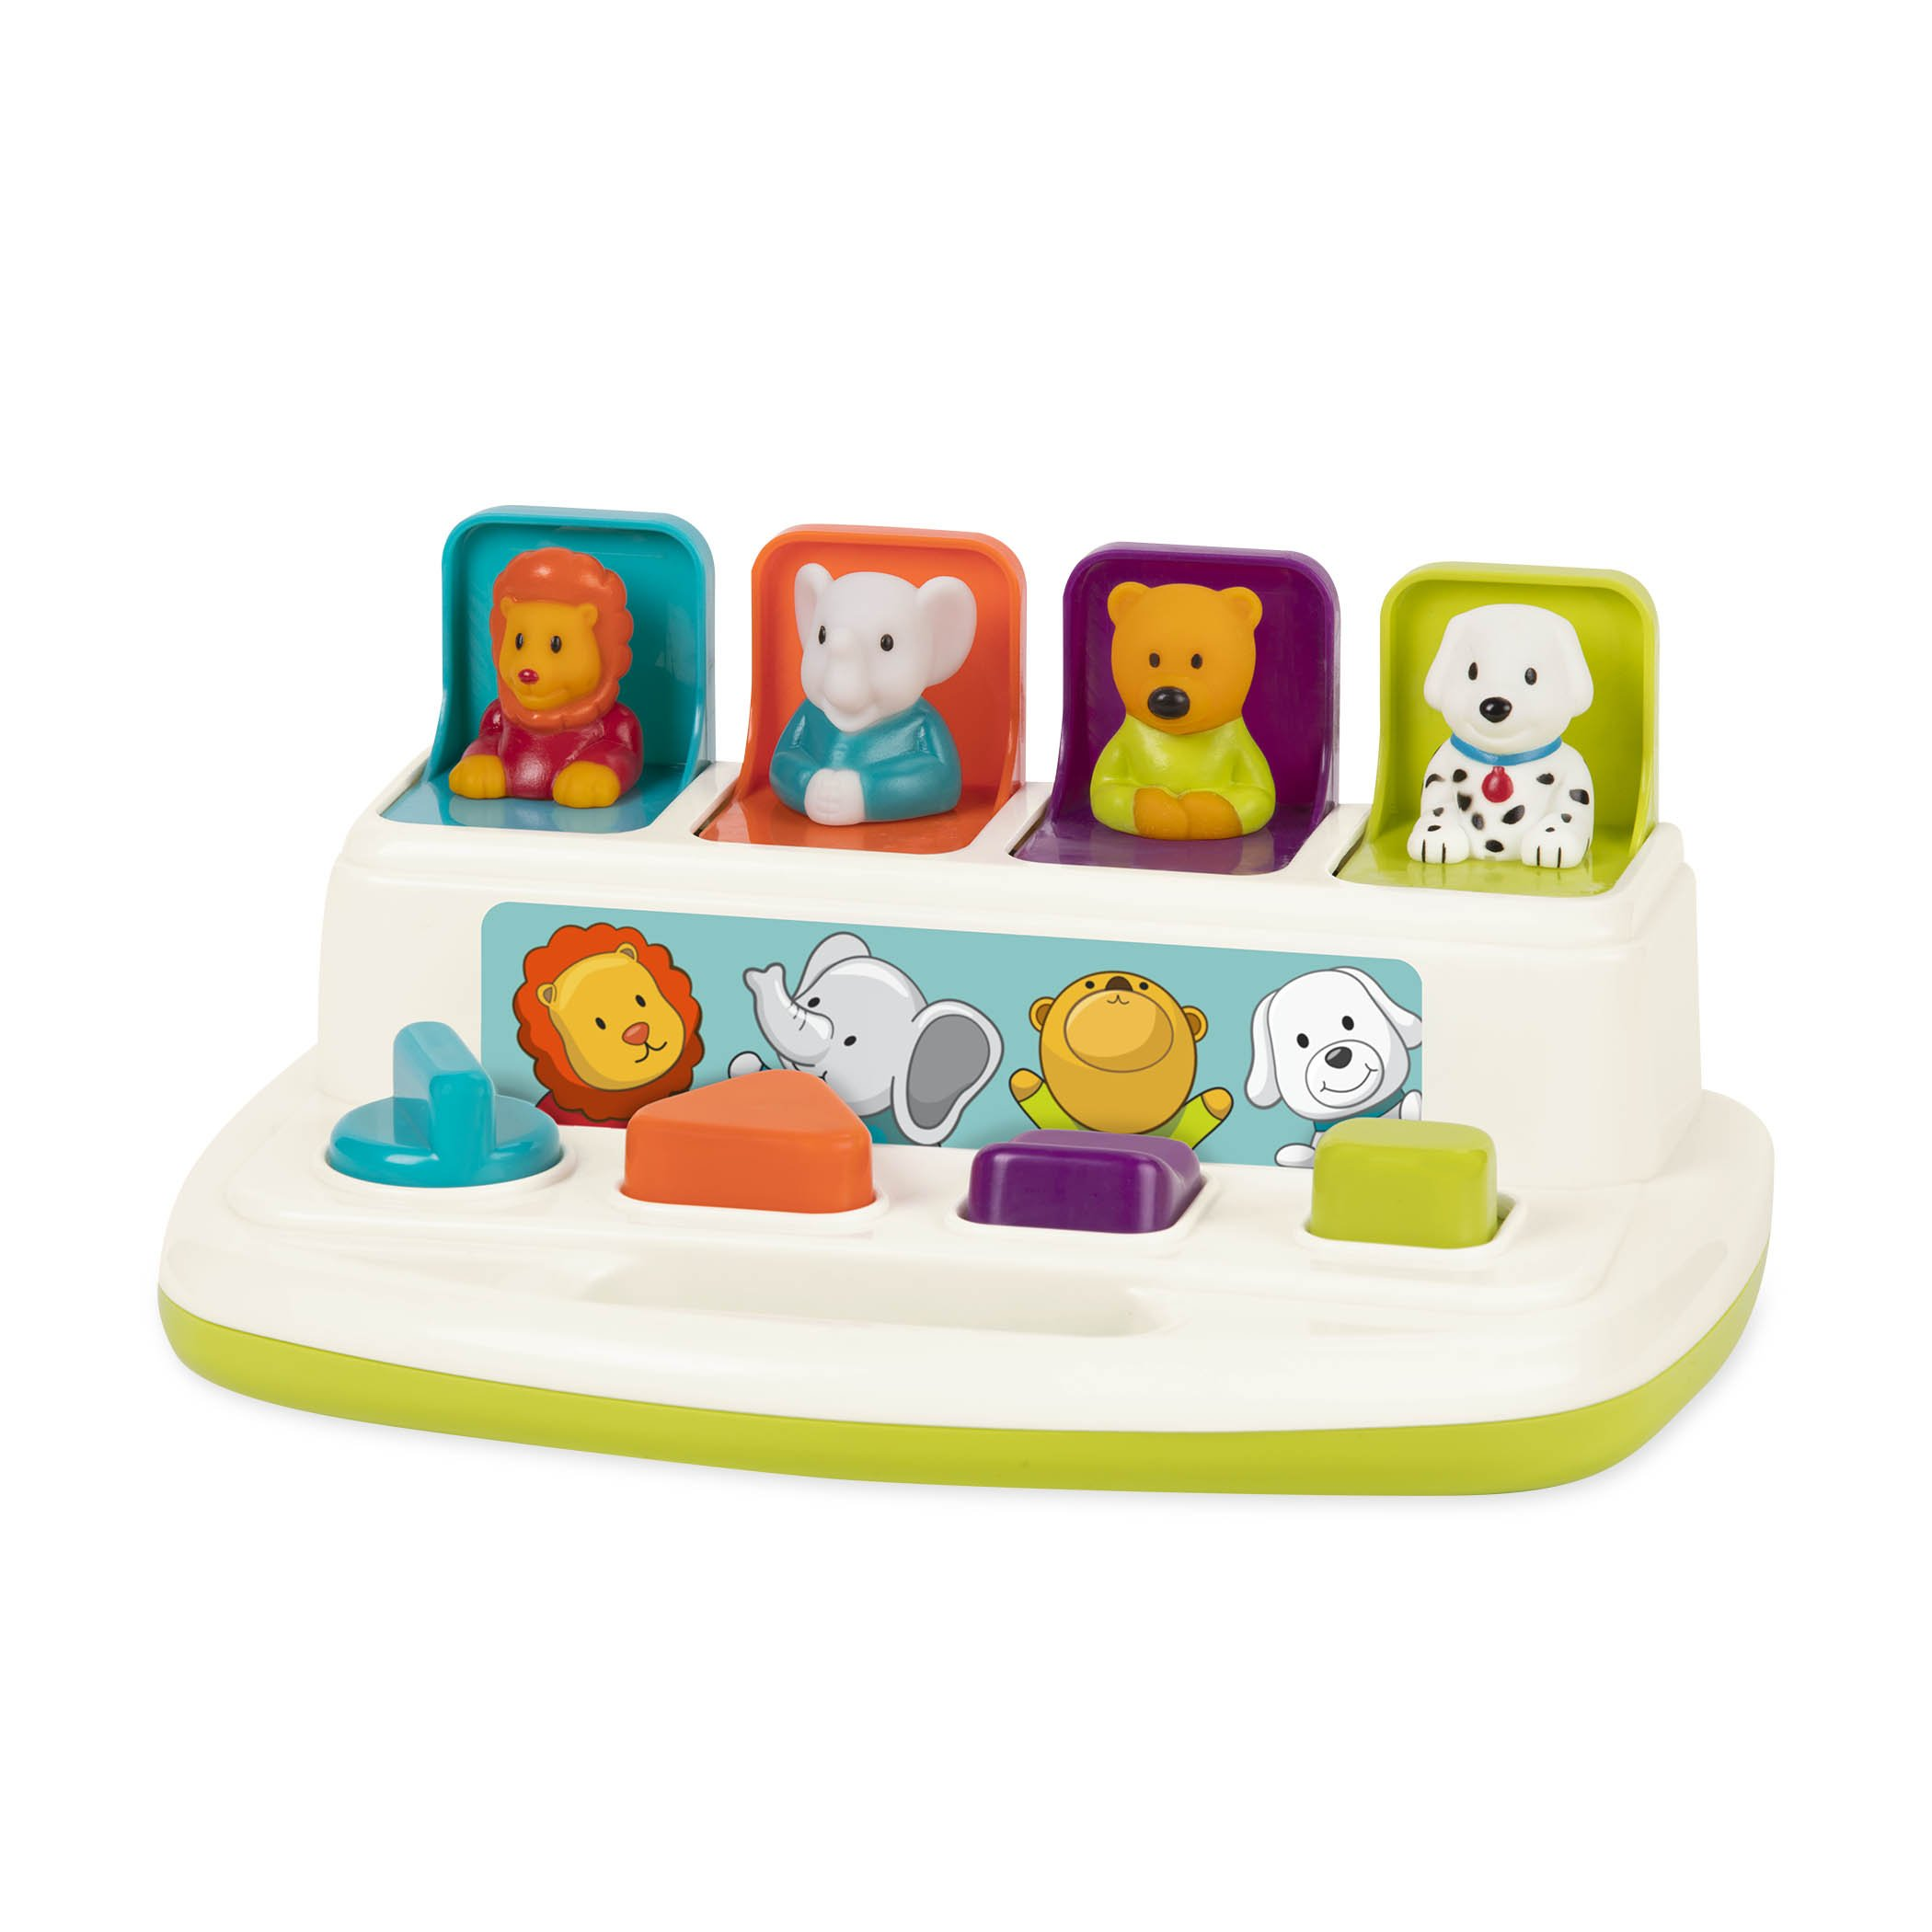 Battat - Pop-Up Pals - Color Sorting Animal Push & Pop Up Toy for Kids 18 Months + by Battat